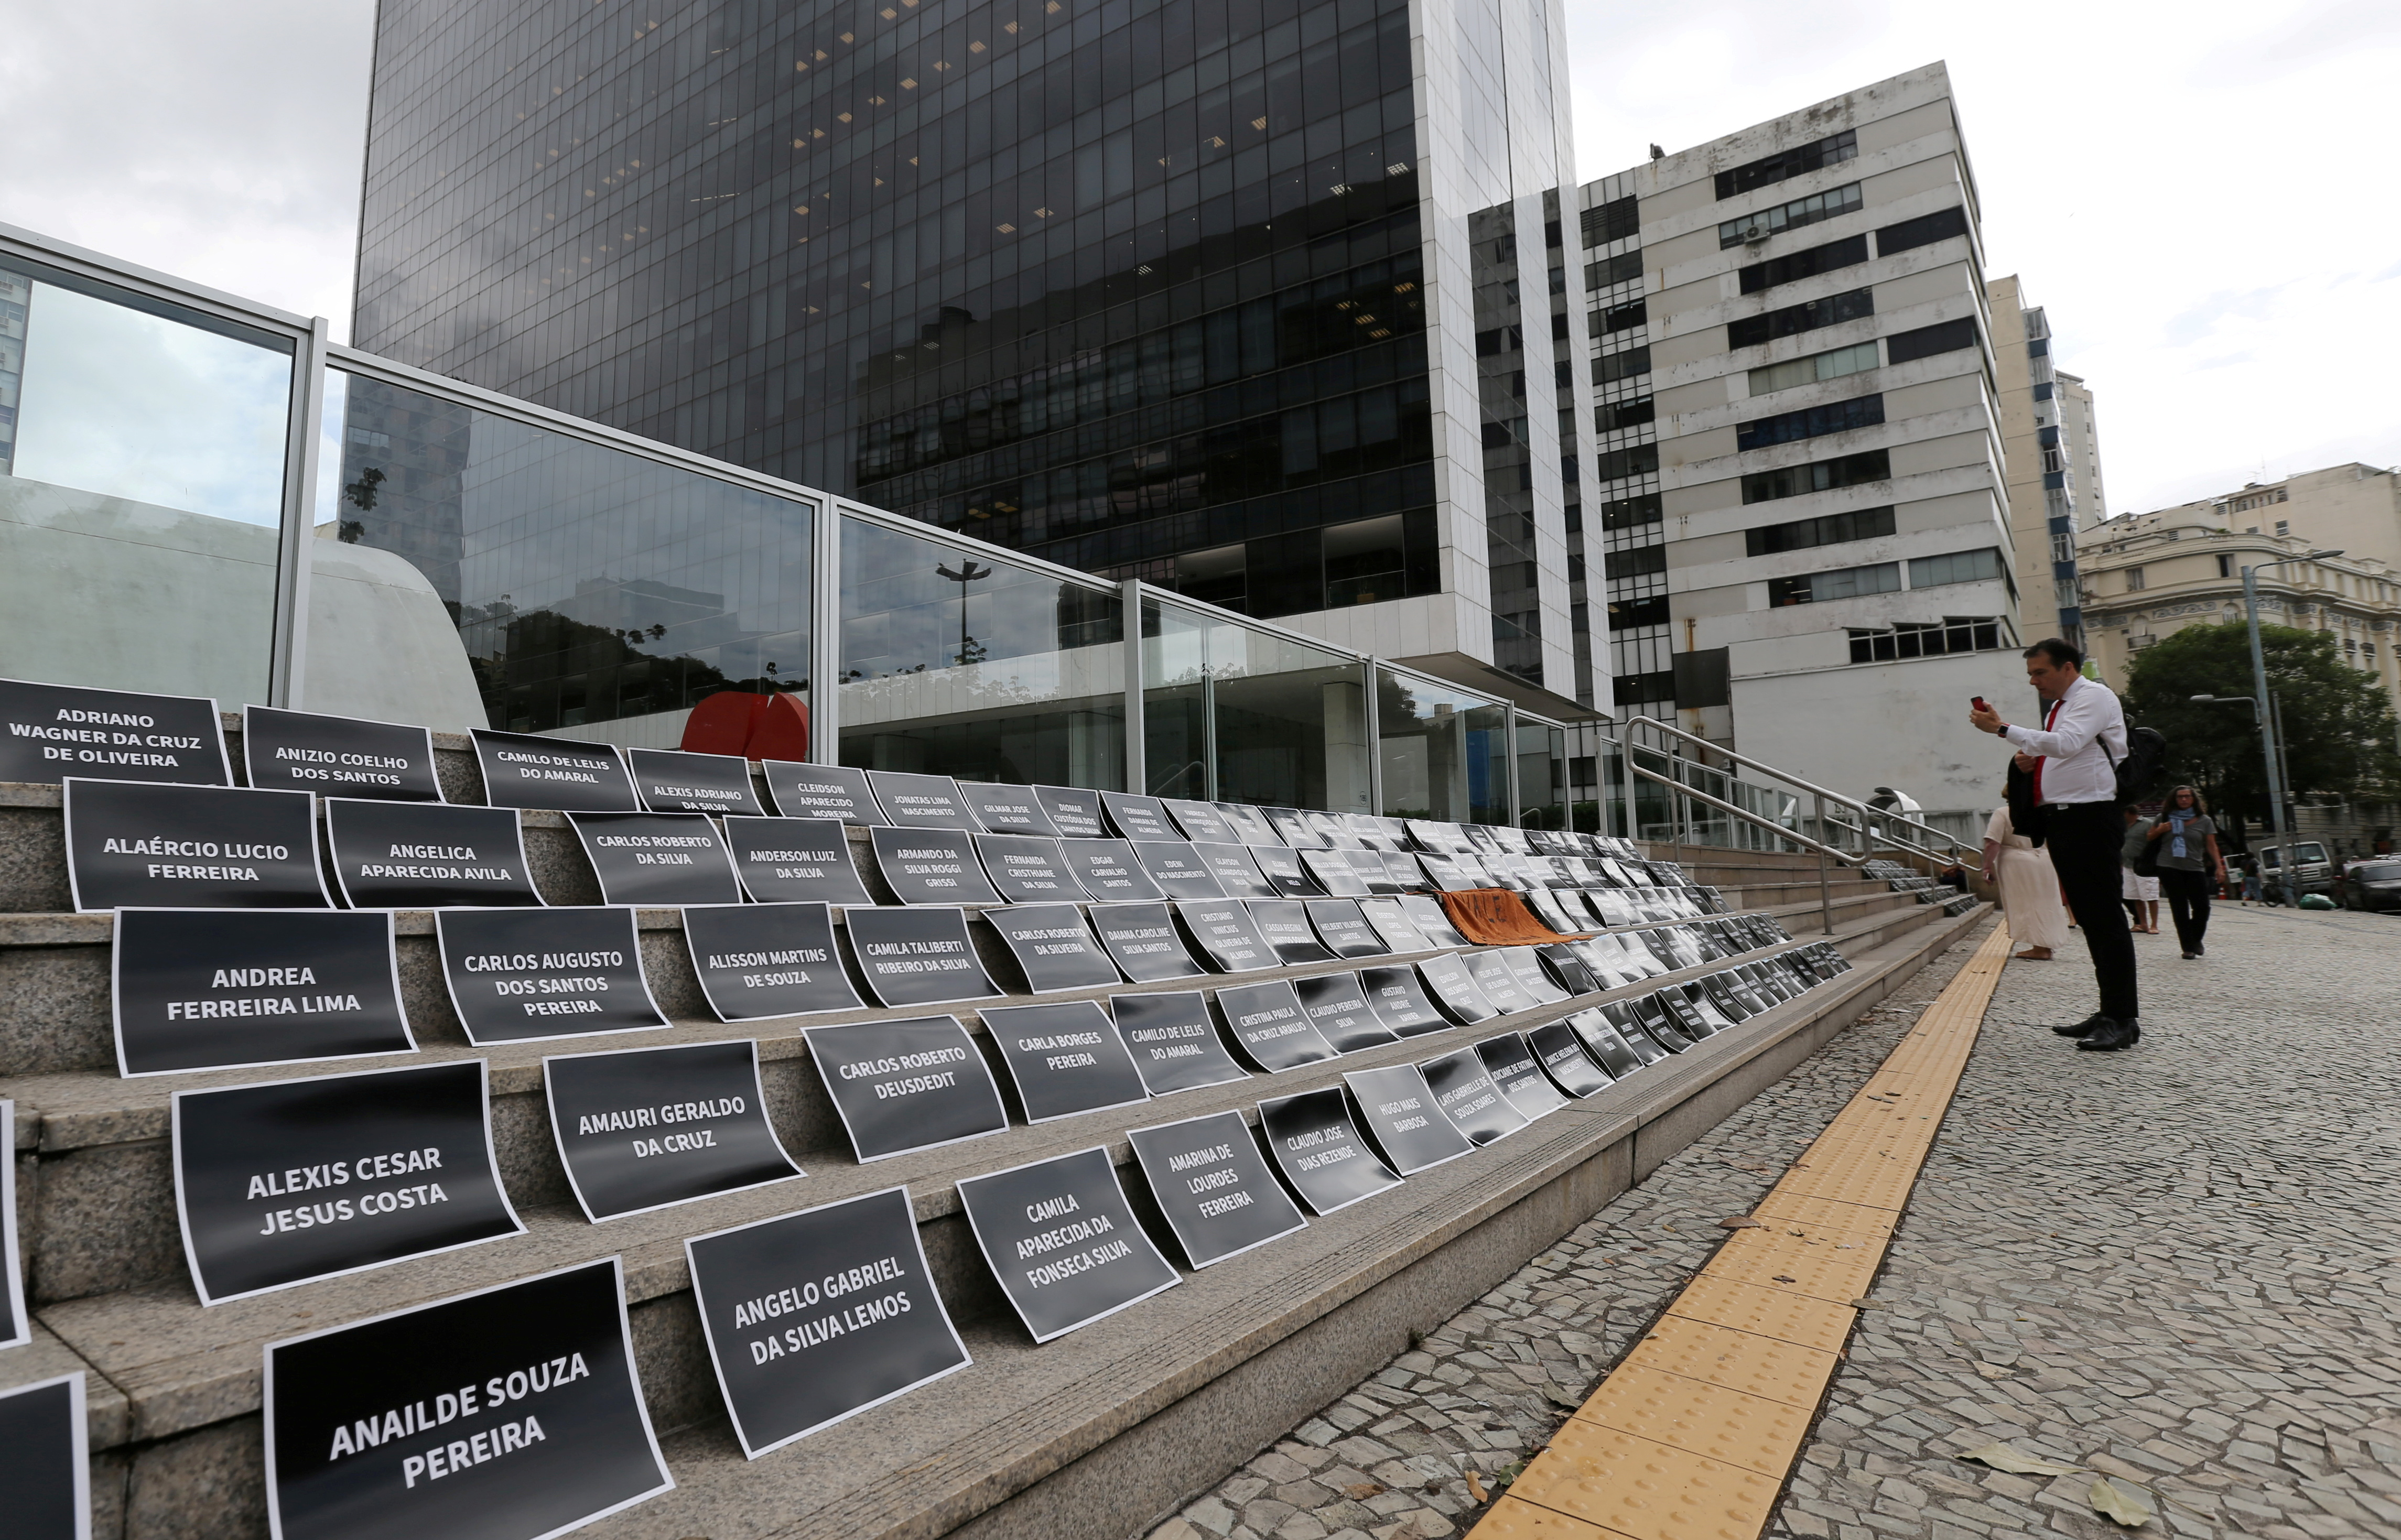 Placards with names of victims of a collapsed tailings dam owned by Vale SA are placed in front of the Brazilian mining company Vale SA buldiing, during an assembly of shareholders, in Rio de Janeiro, Brazil April 30, 2019. The banners reads